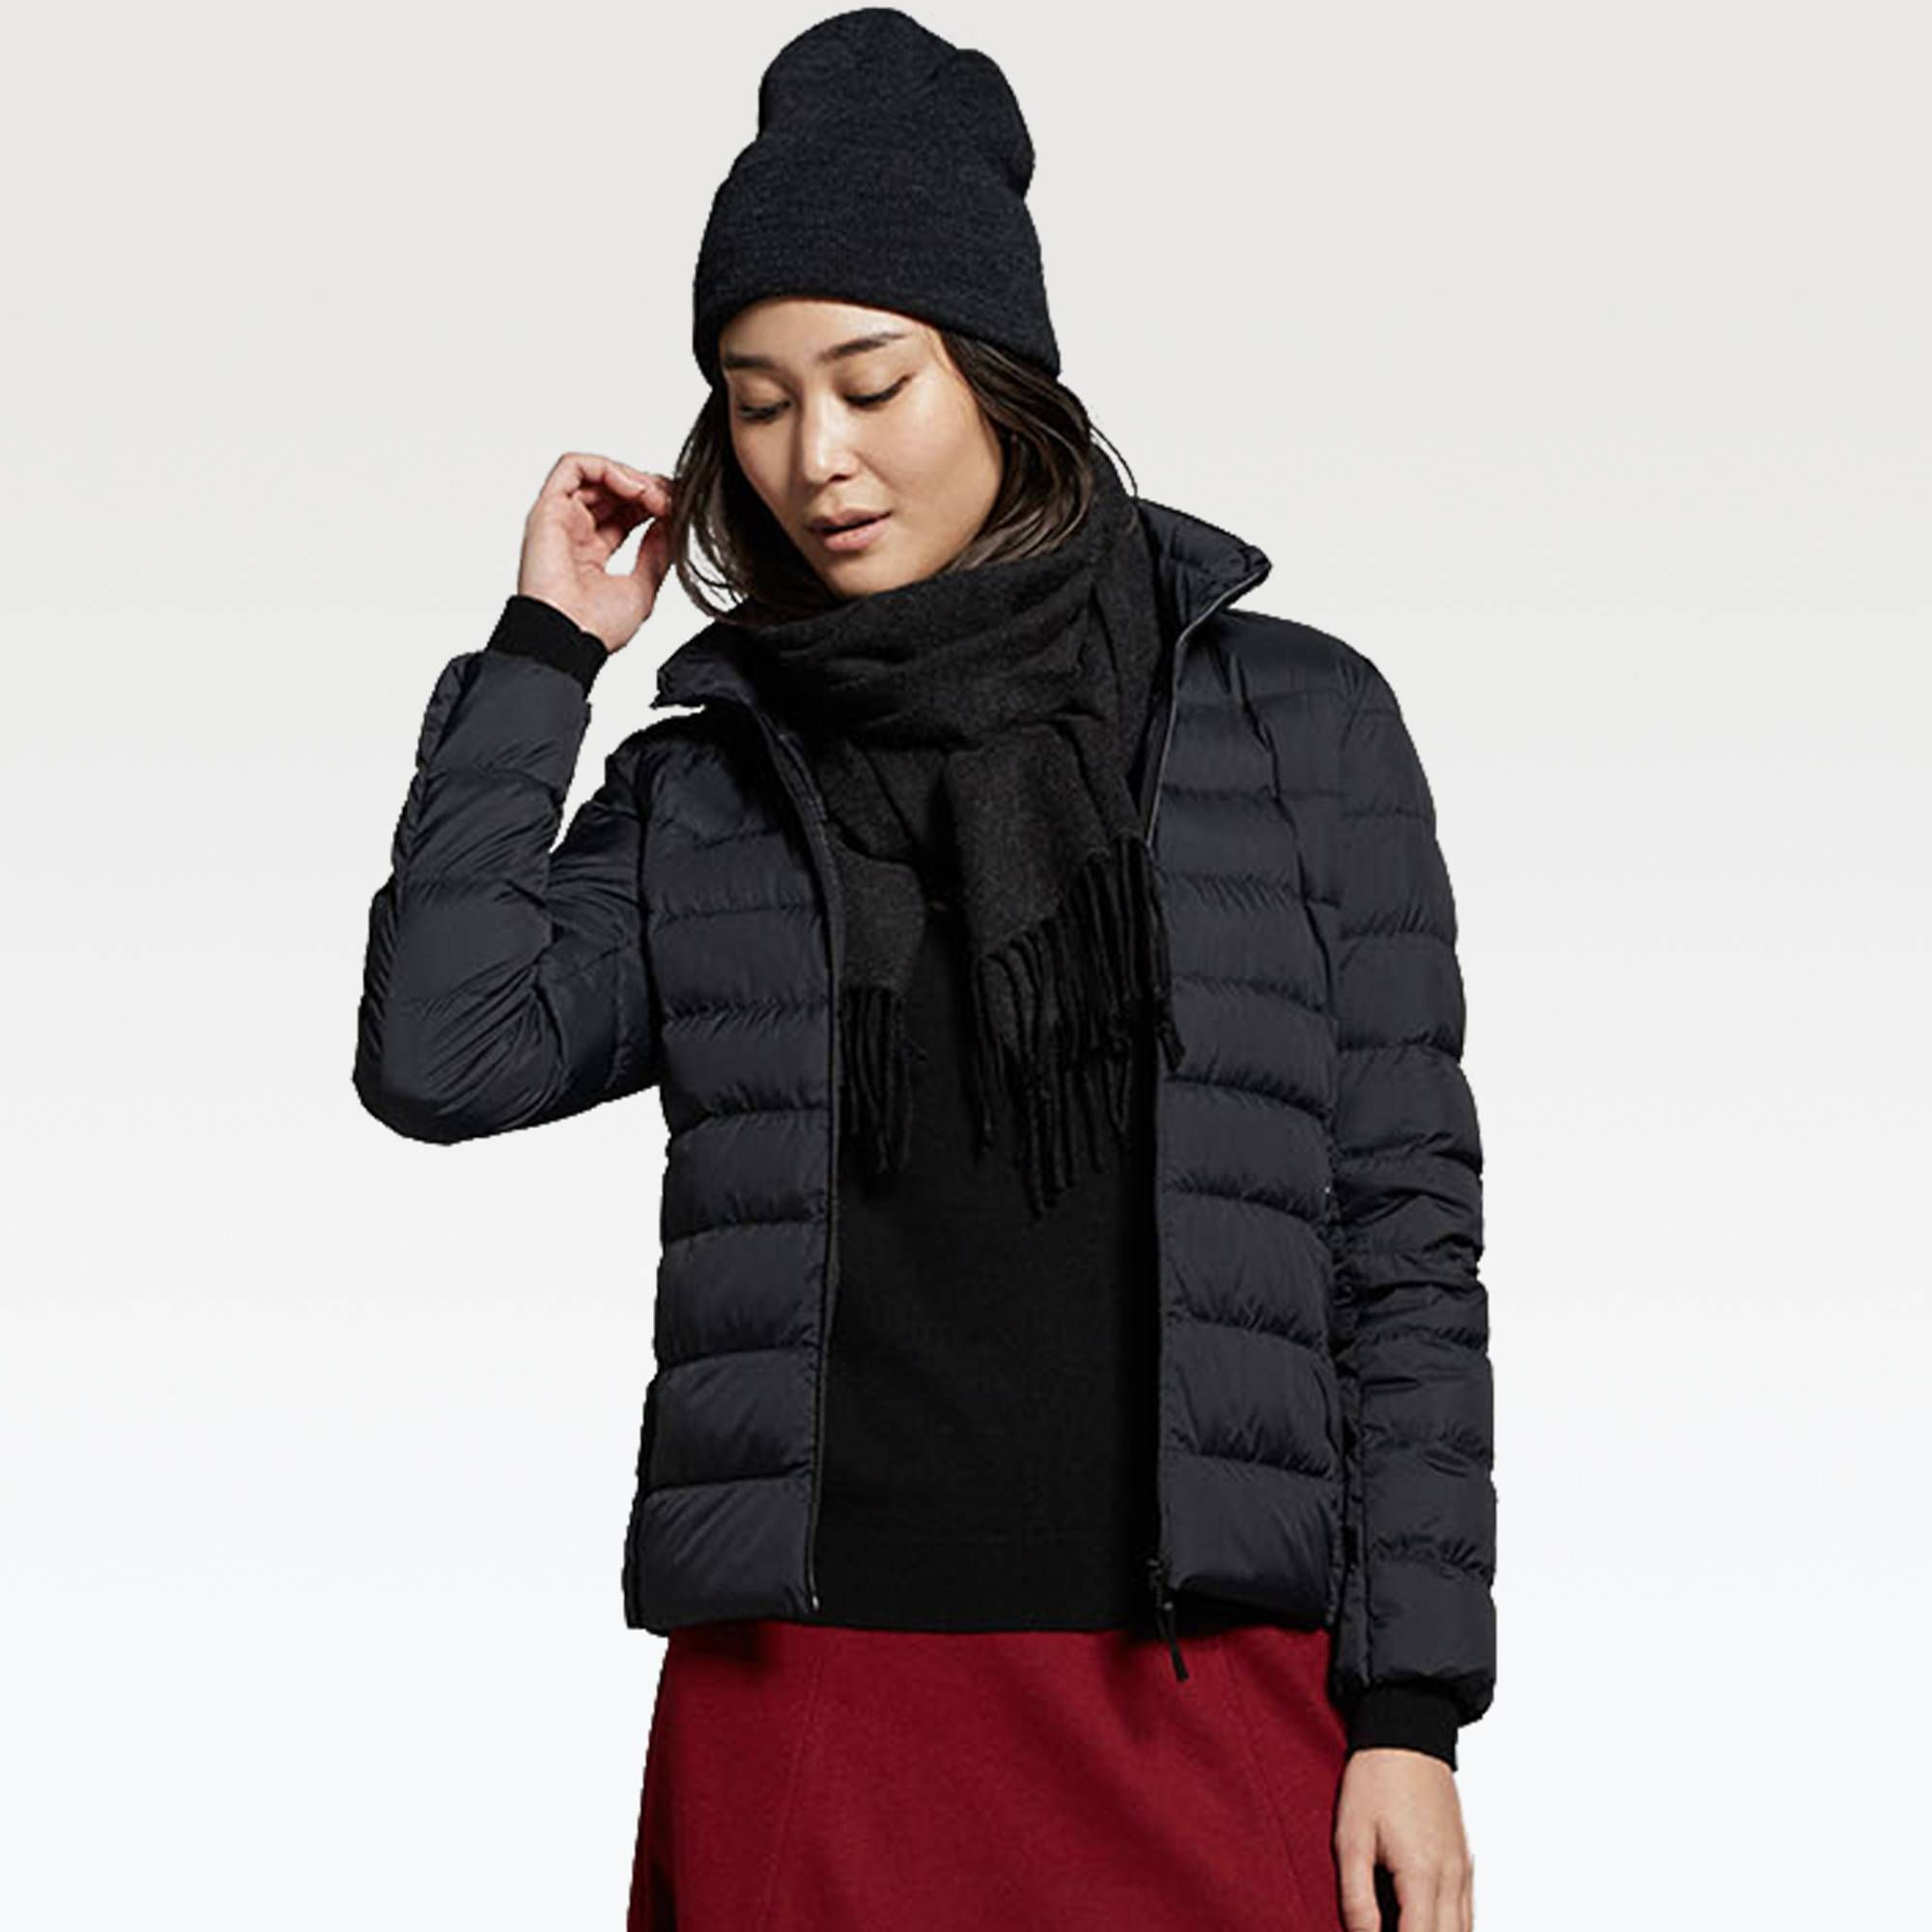 Women Ultra Light Down Jacket | Outerwear women, Jackets